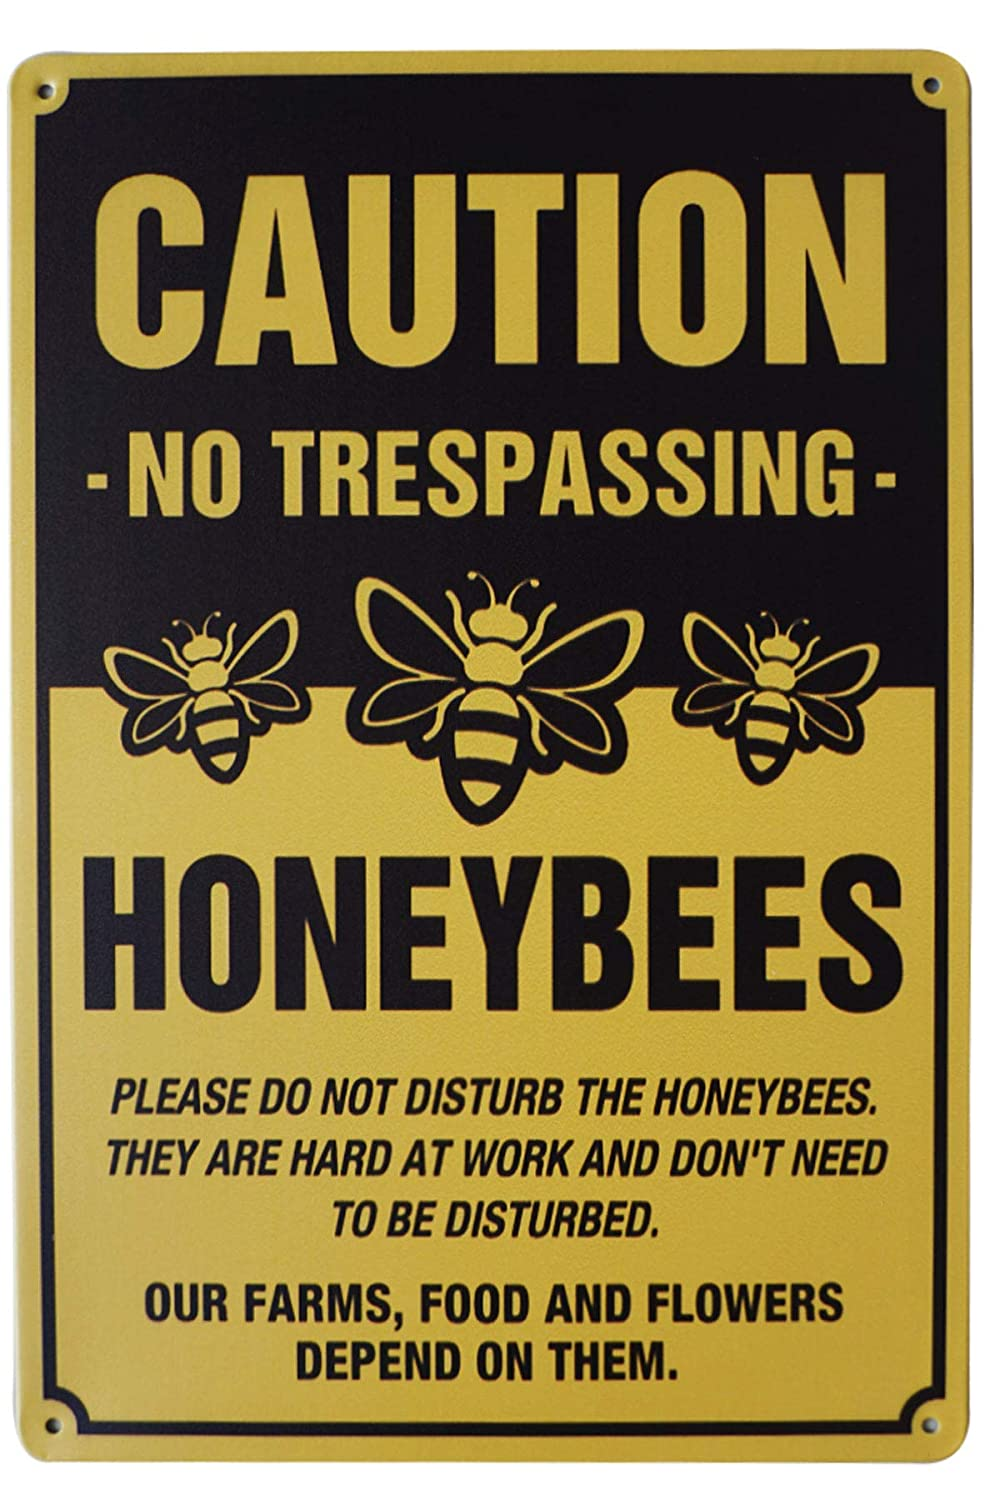 LASMINE Novelty Animal Signs Caution No Trespassing Honeybees at Work Sign for Garden Farm Orchard Garage Home Decor Outdoor Signs 8X12 Inch